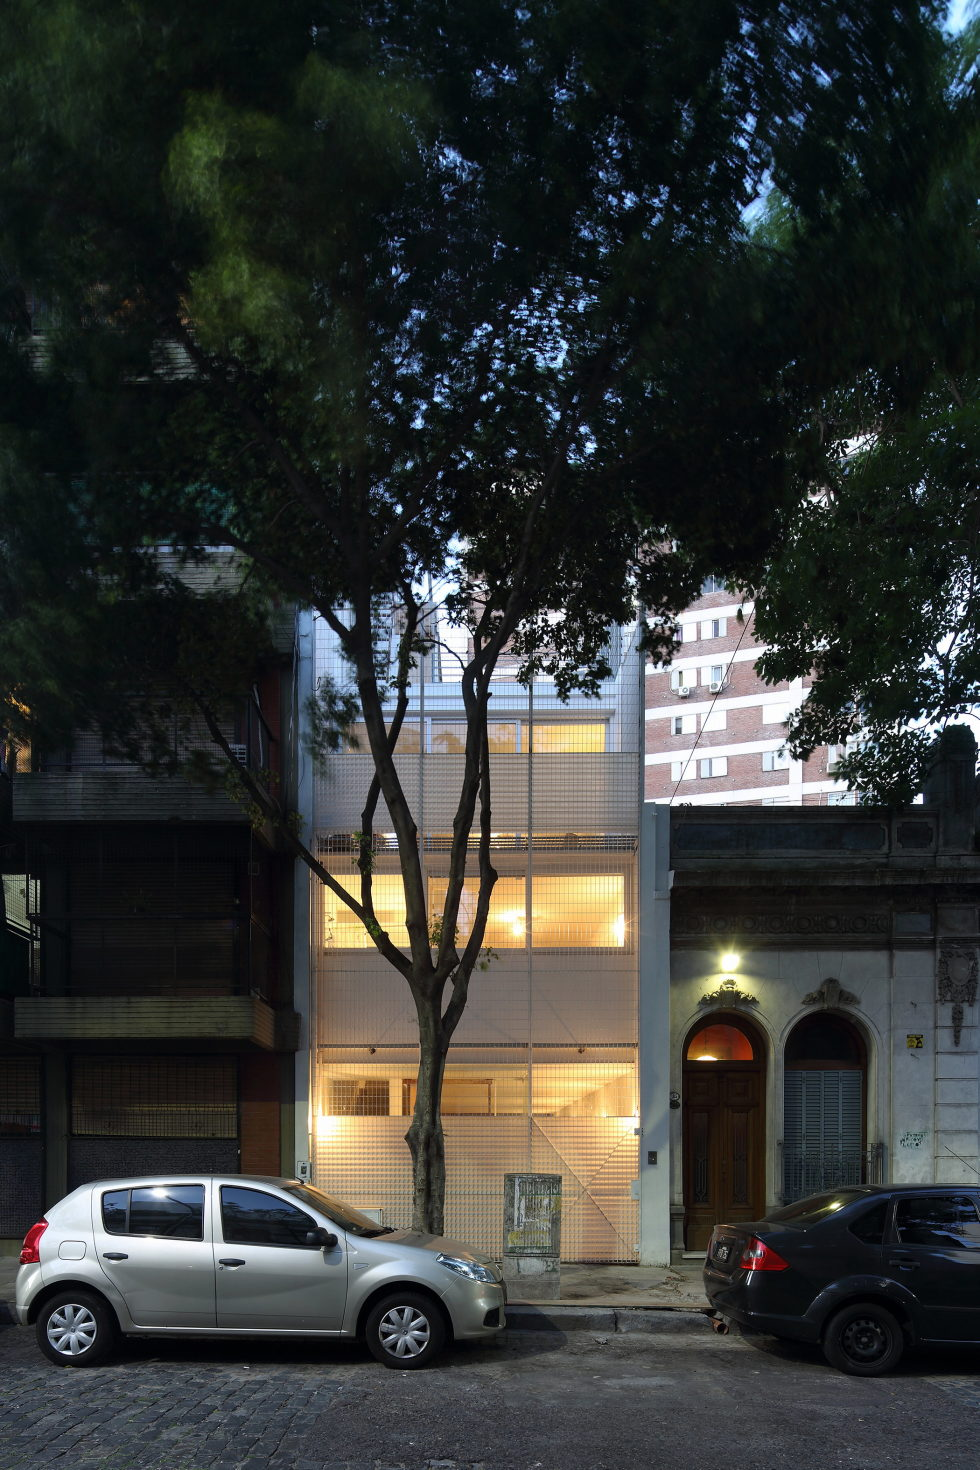 Jauretche House In Buenos Aires upon the project of Colle-Croce 15